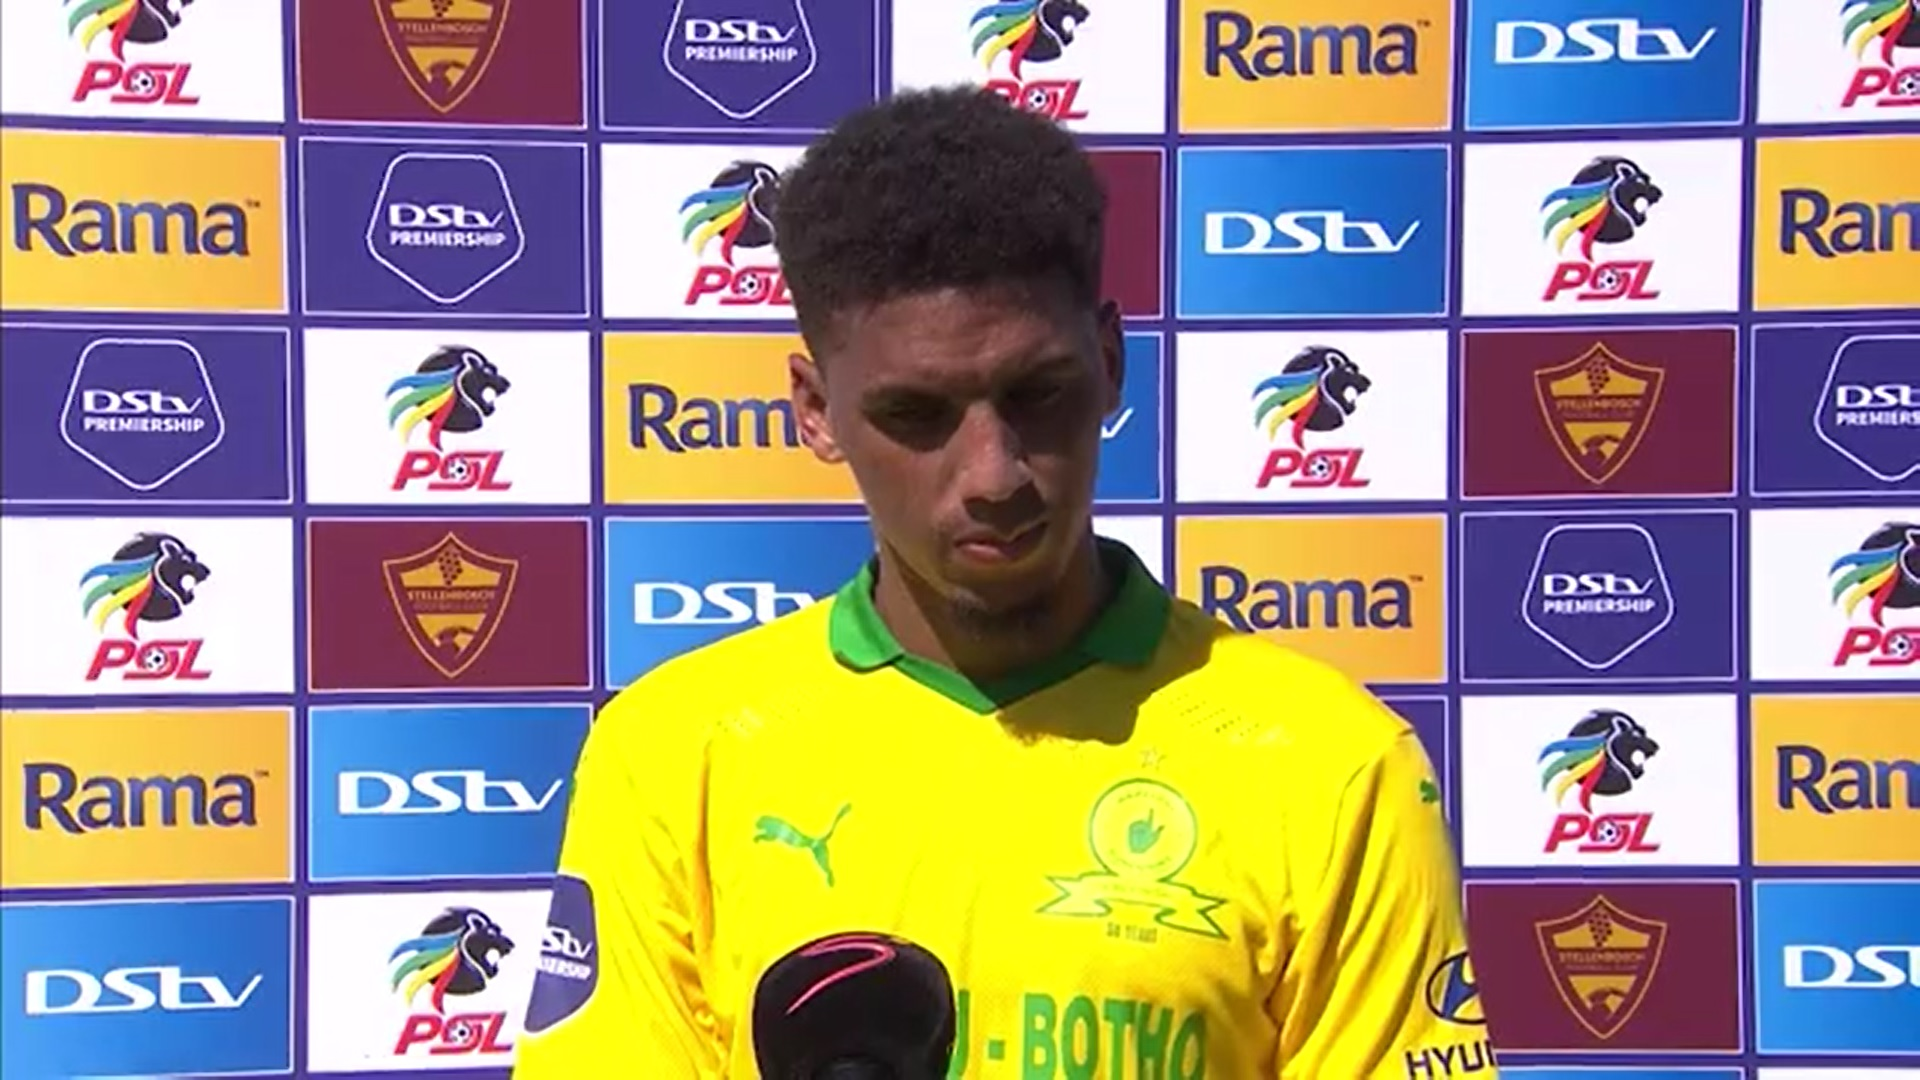 DStv Premiership | Stellenbosch FC v Mamelodi Sundowns | Post-match interview with Rushine De Reuck